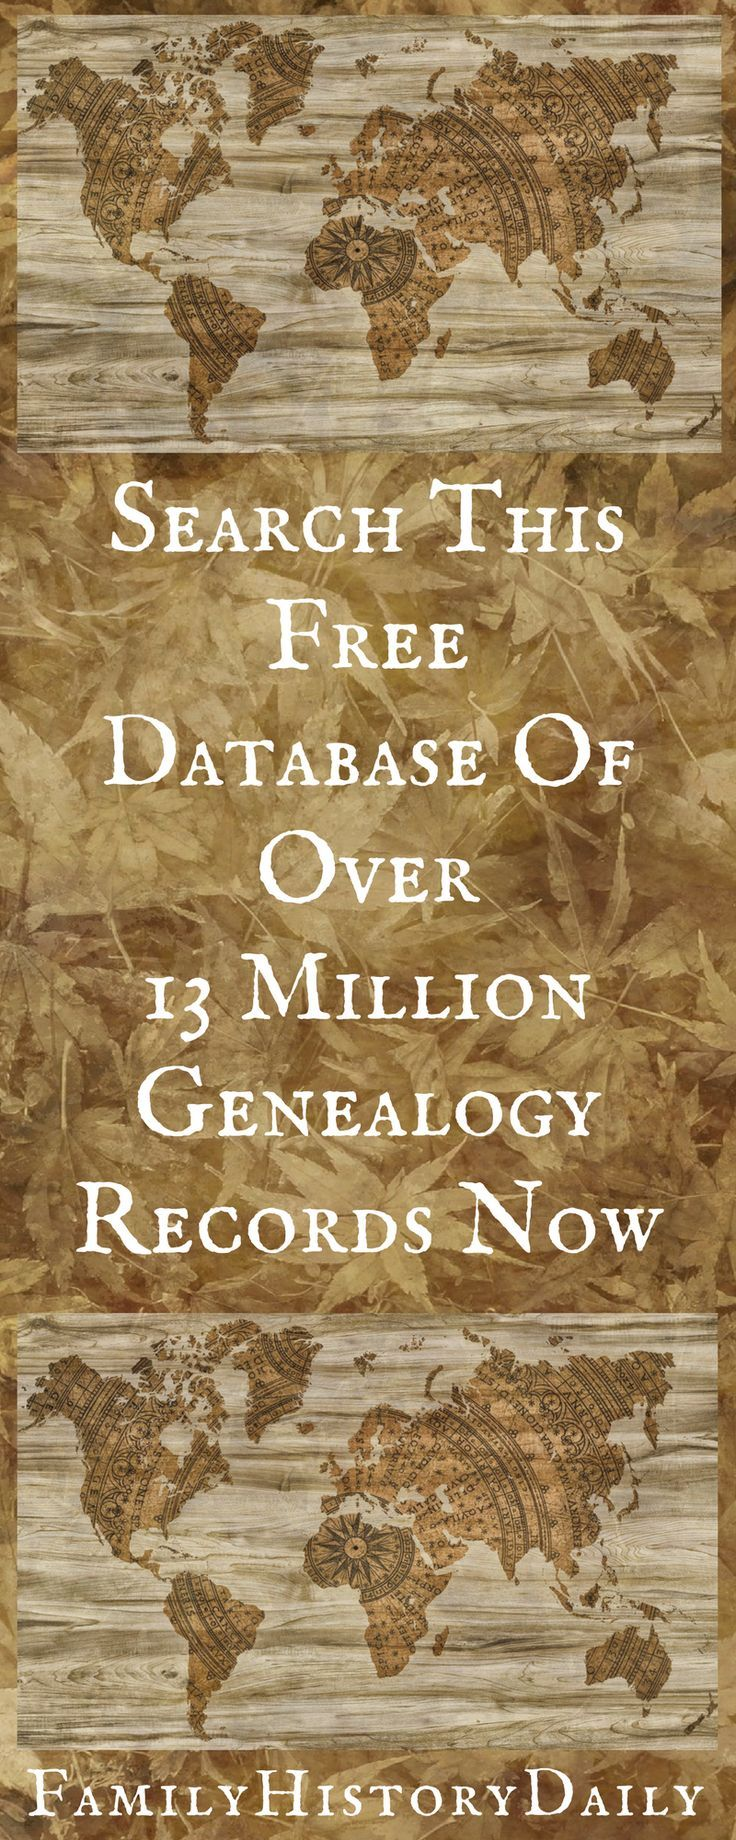 Search this database of over 13 million free genealogy records and learn more about your family history.